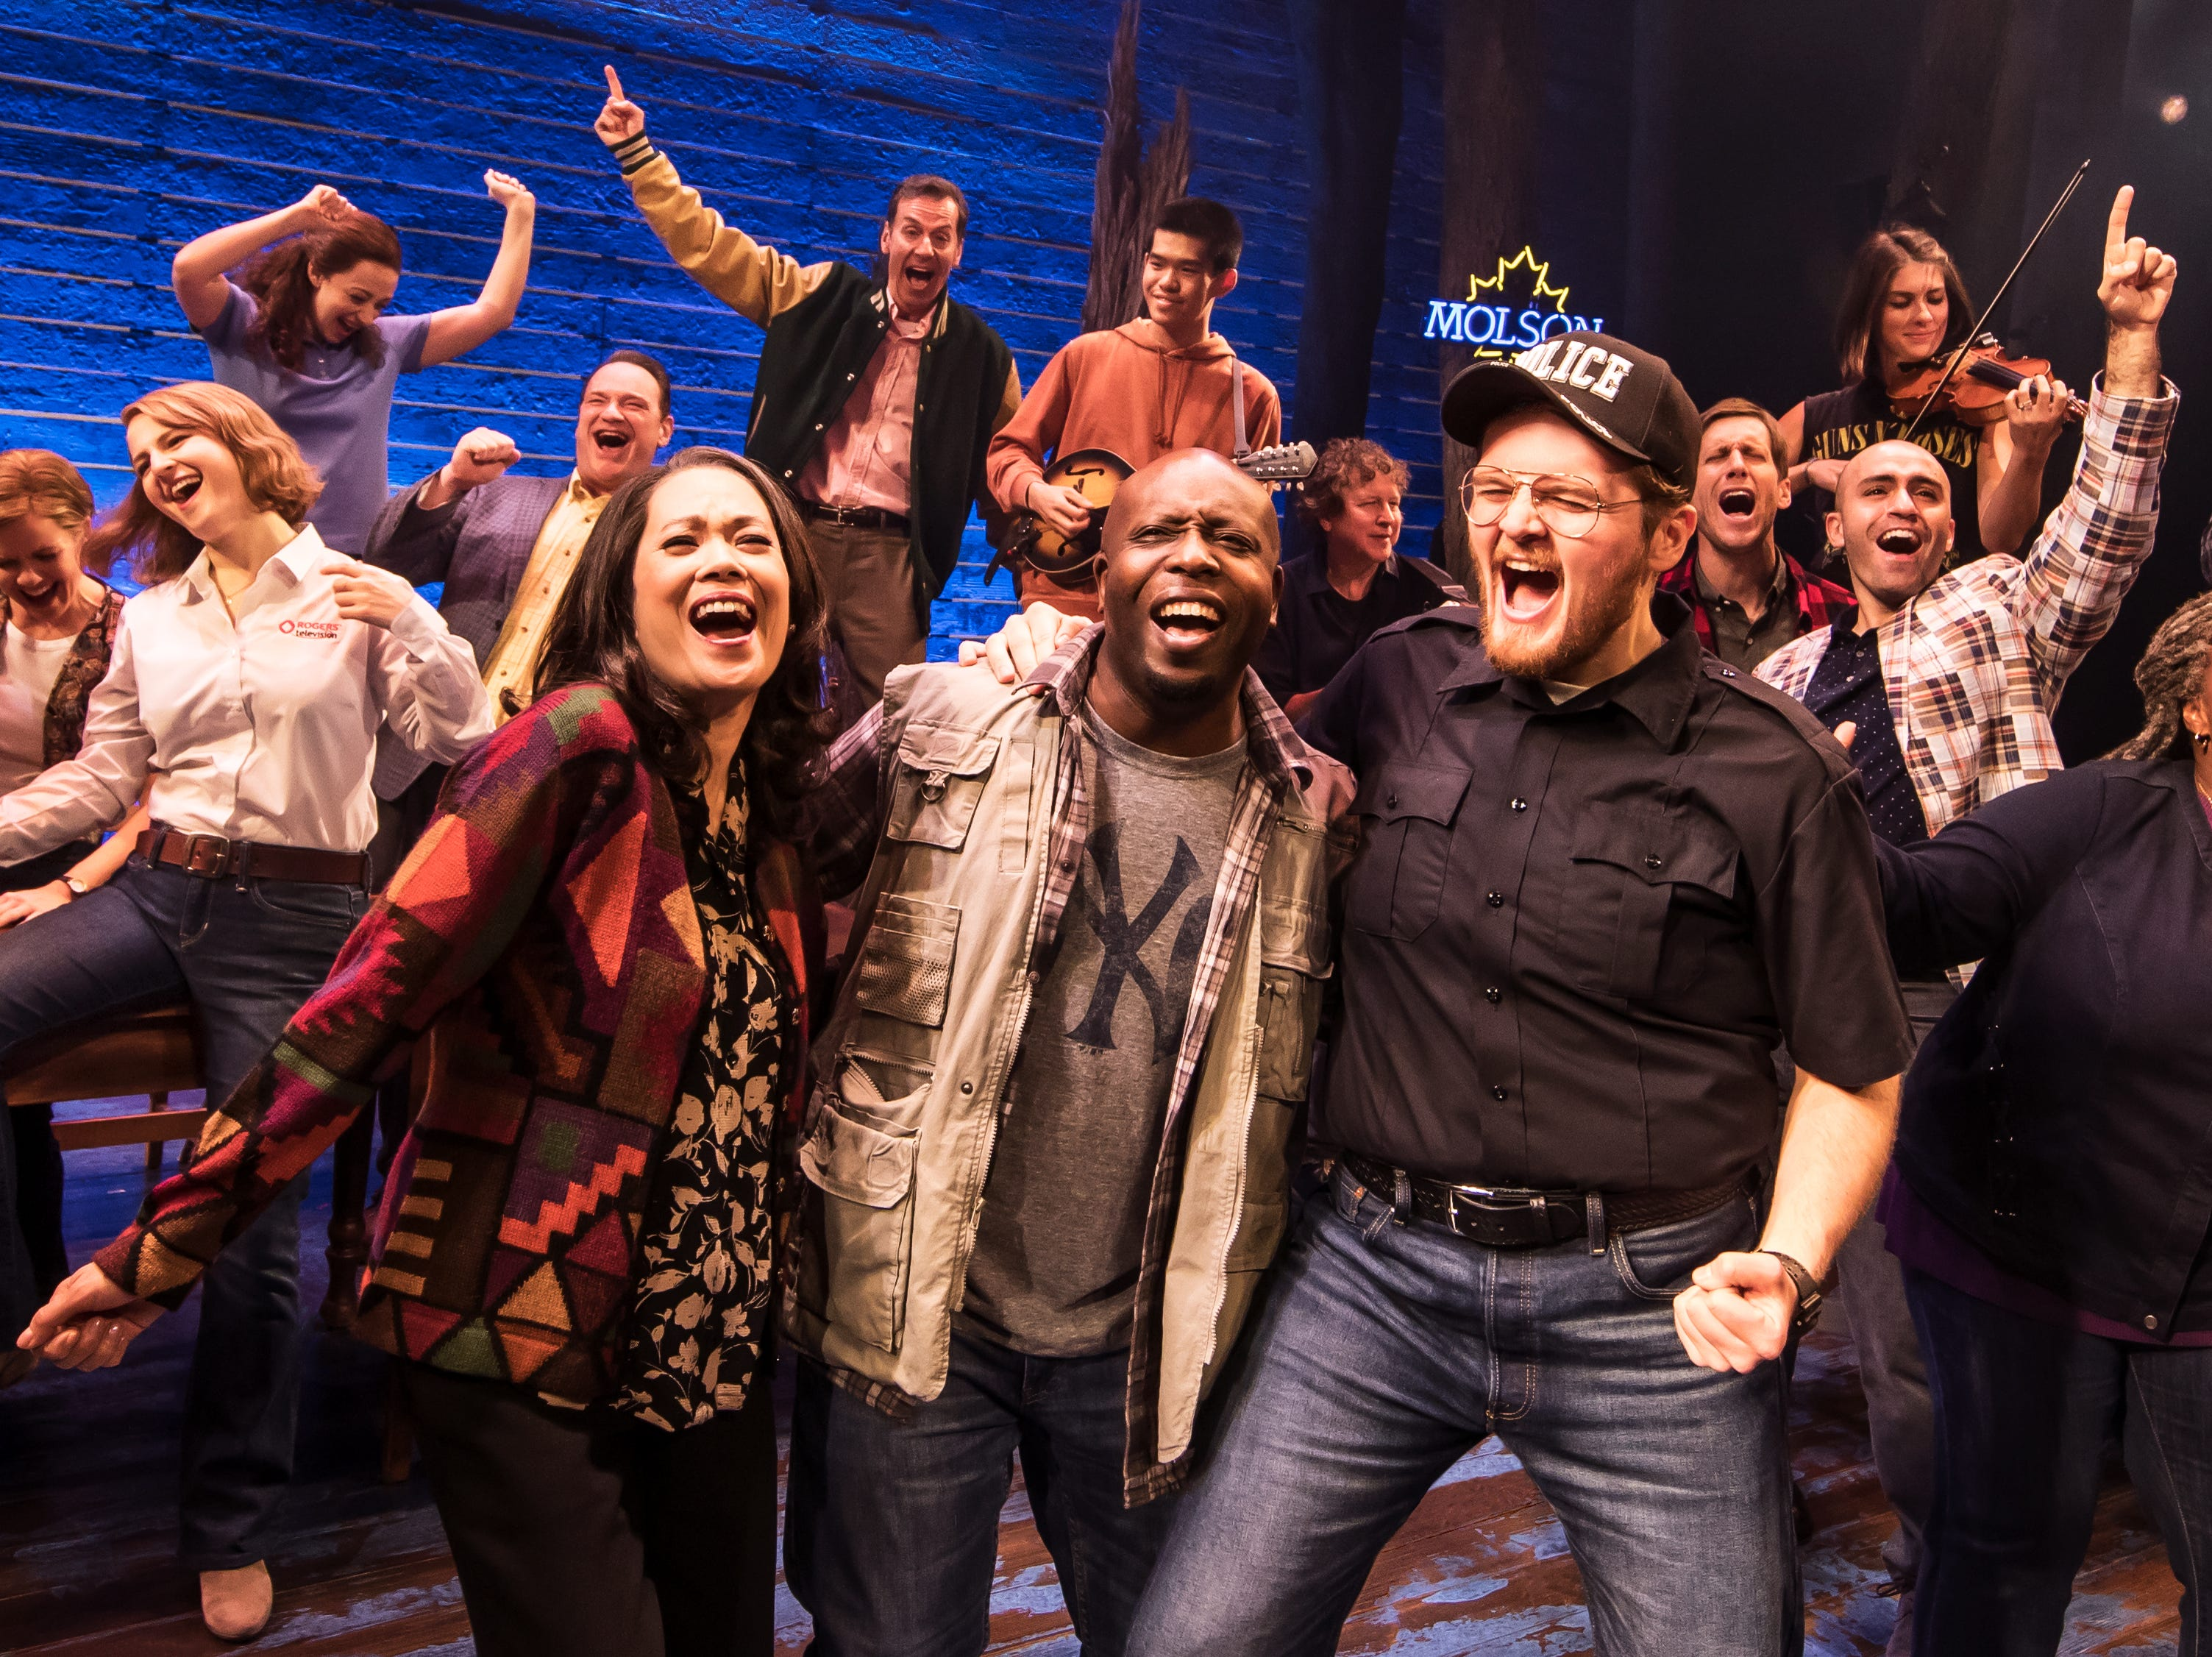 """Come From Away"" runs Jan. 28-Feb. 2, 2020 at the Civic Center in Des Moines, Iowa."